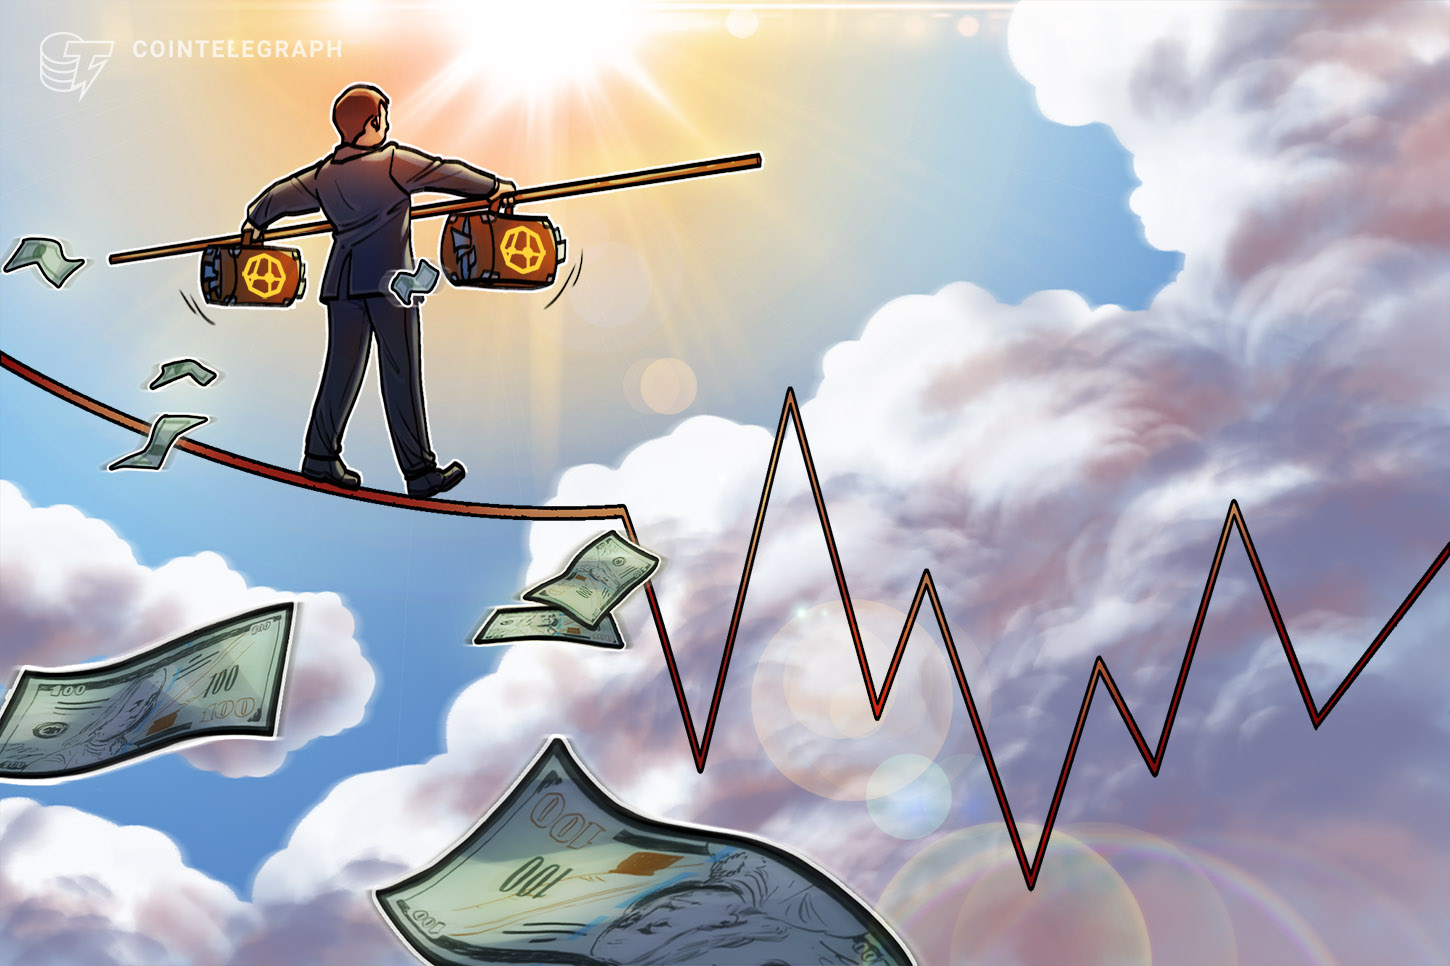 Stablecoin crisis: Huge risk or FUD? - Cointelegraph video report